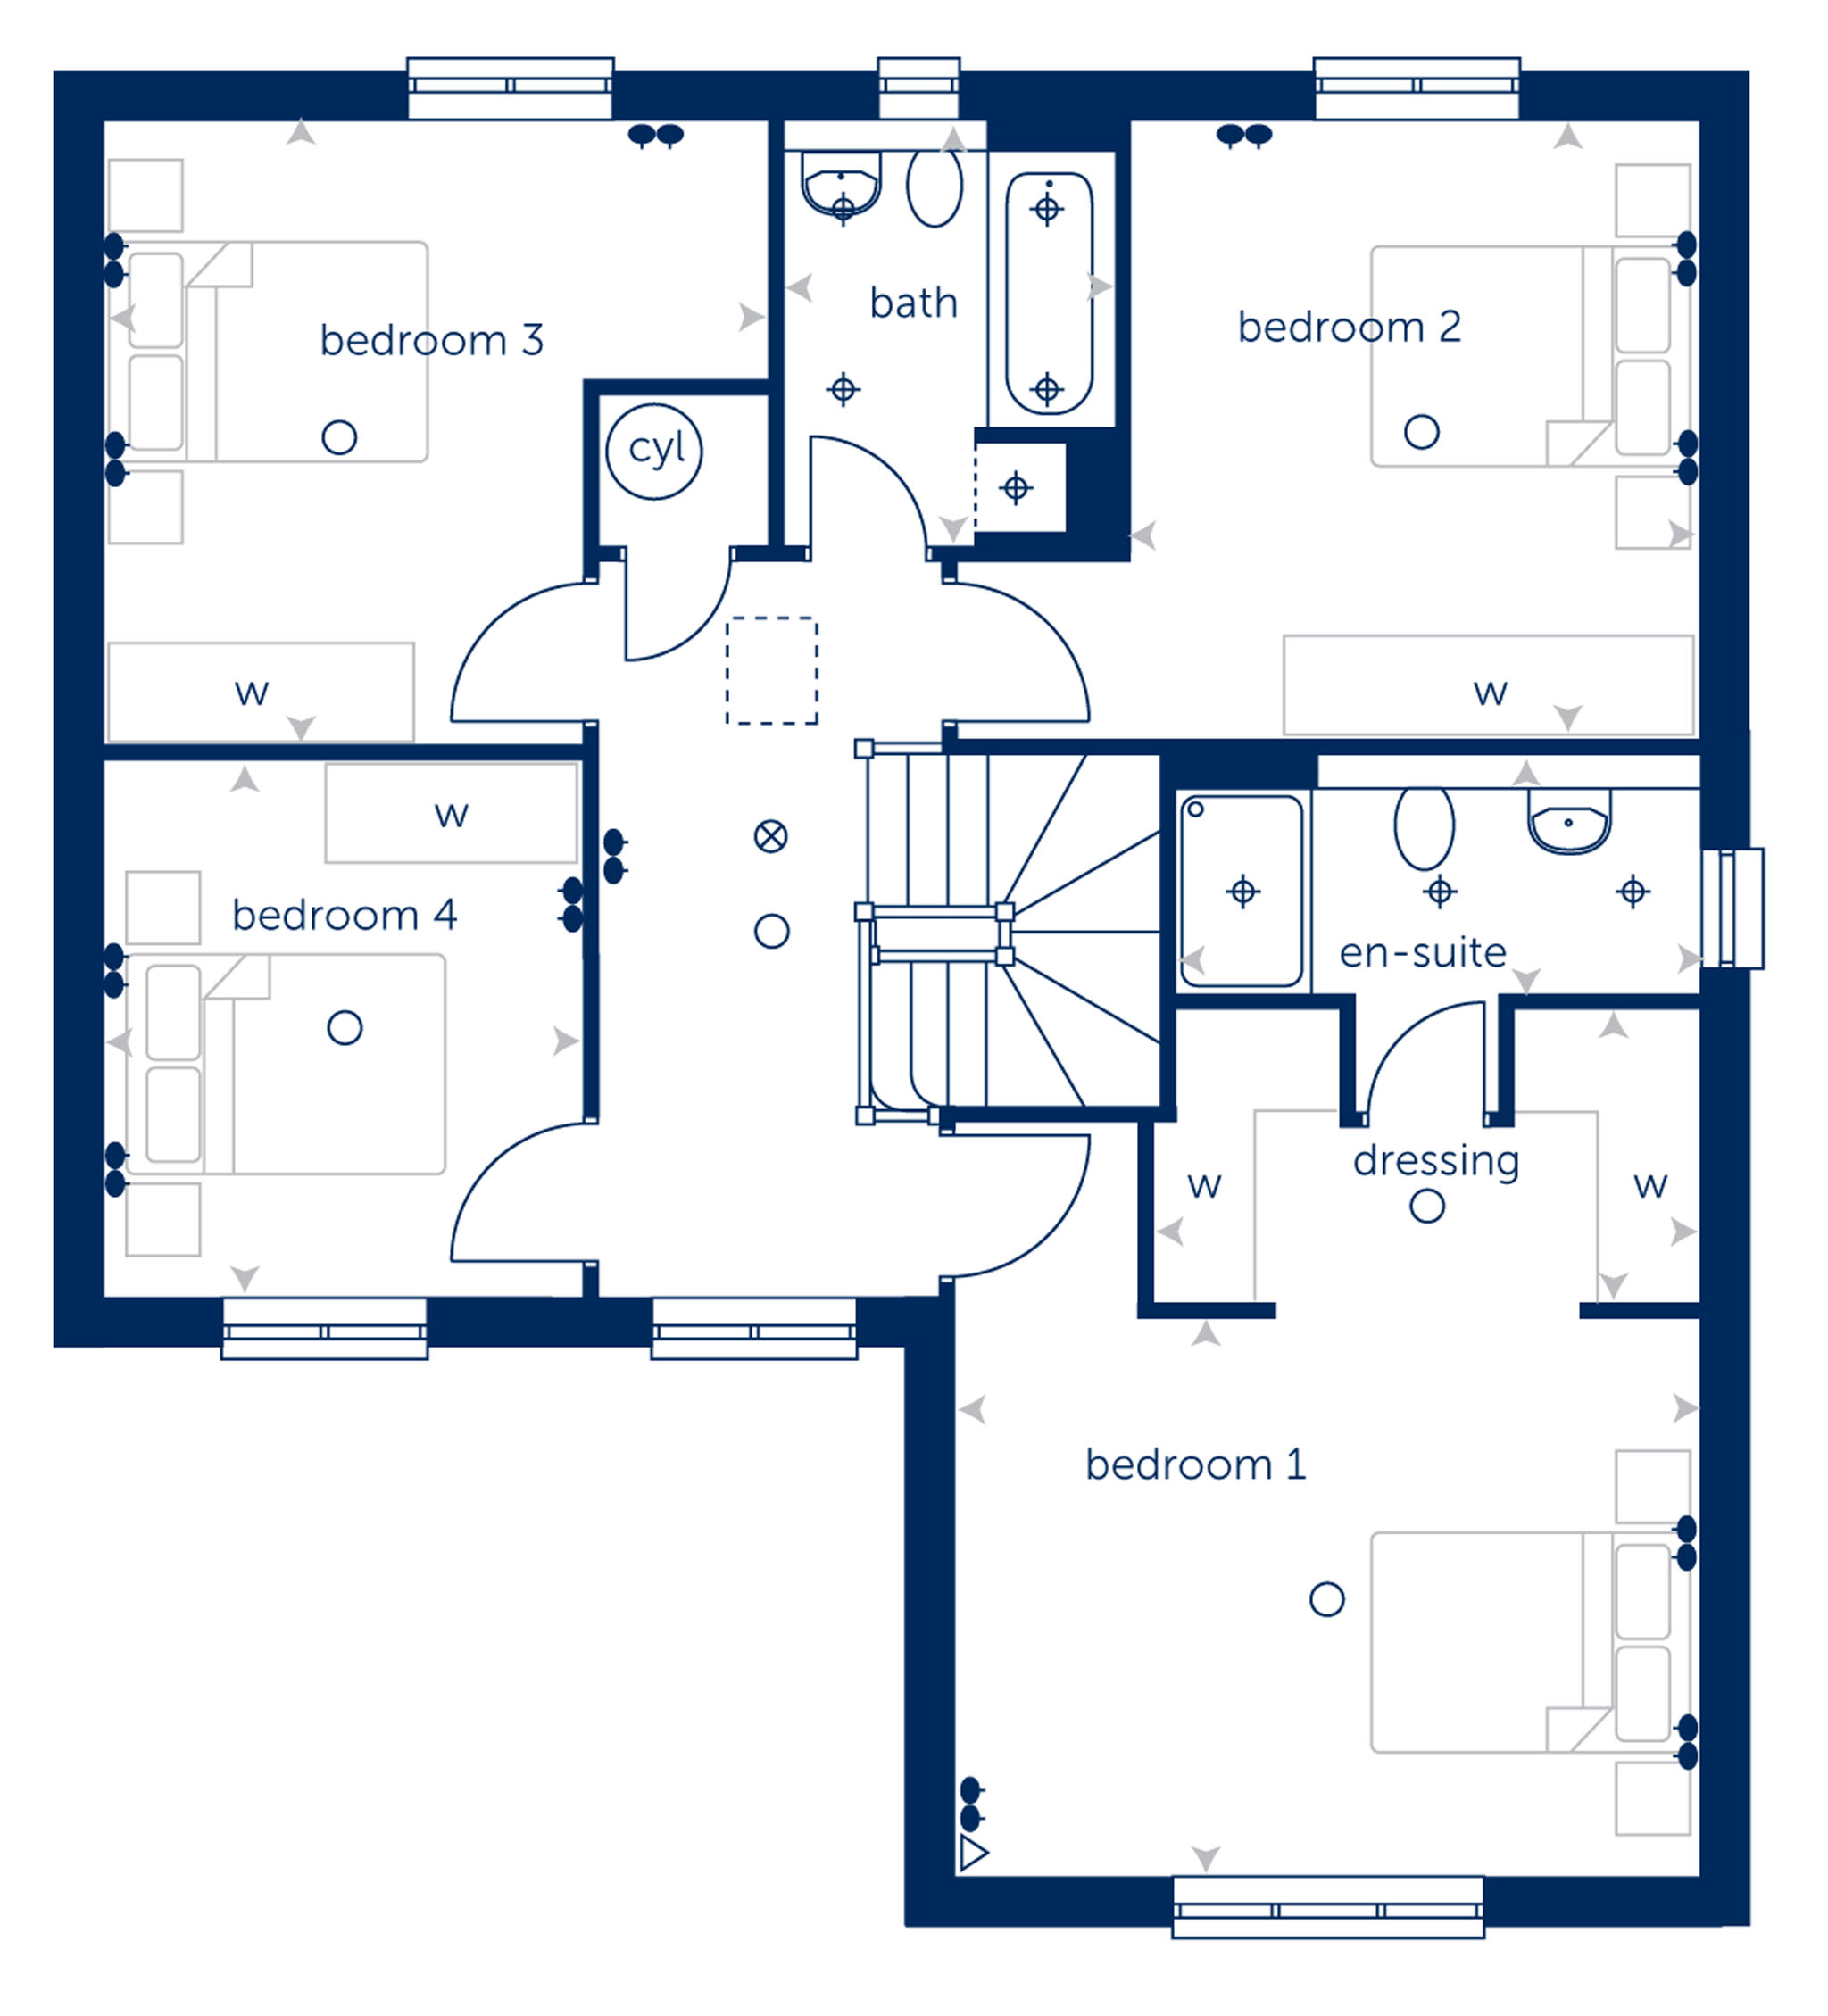 New Detached Home In Guisborough North Yorkshire From Bellway Homes